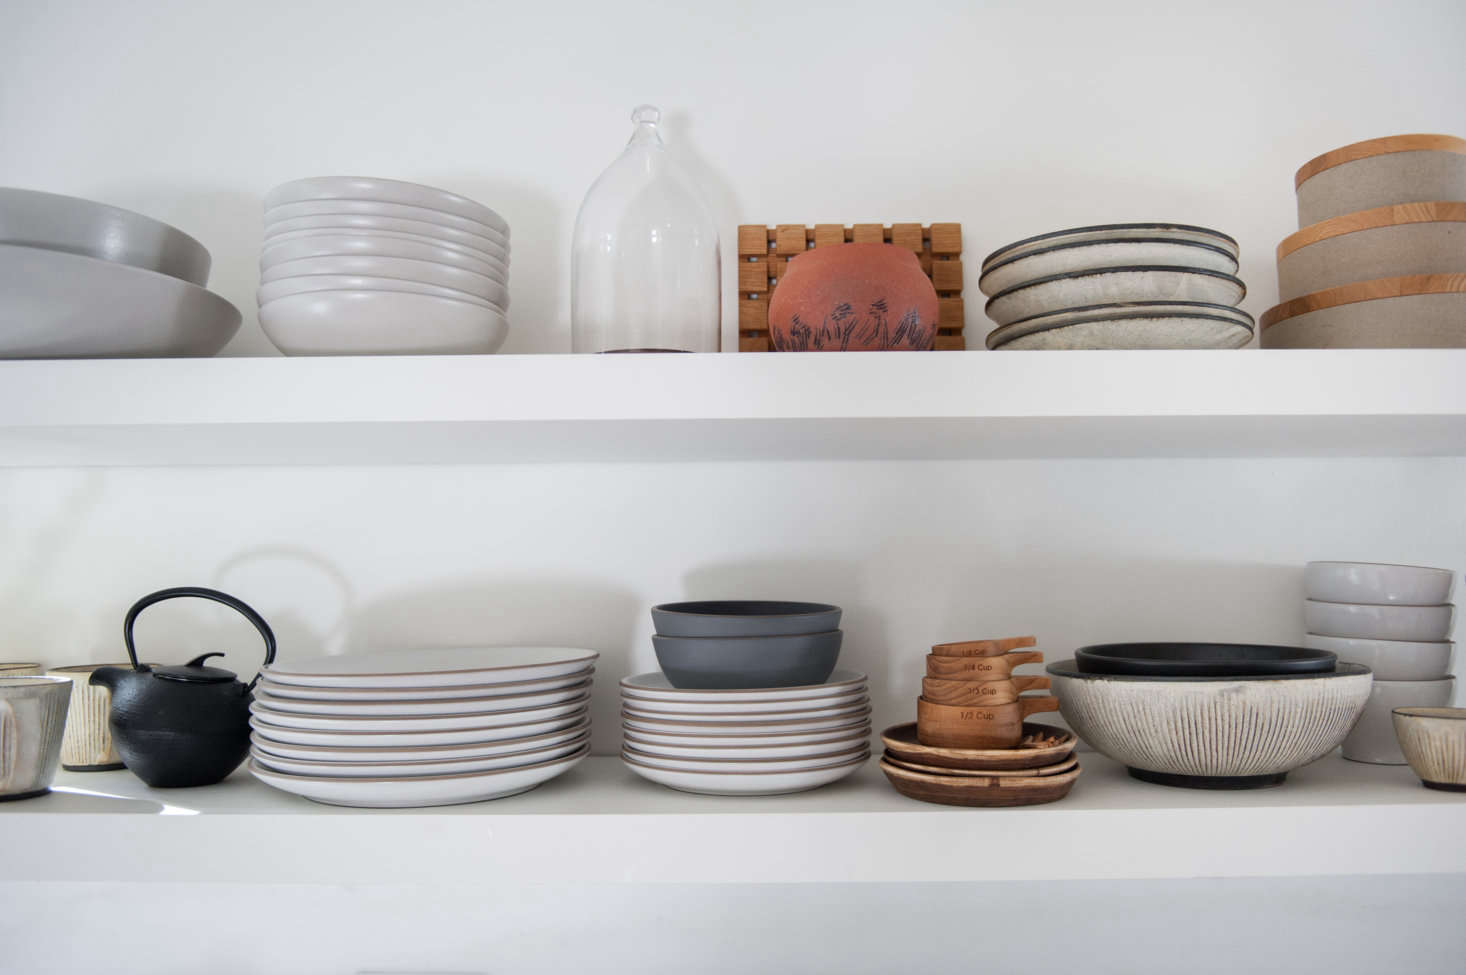 The shelves display plates from Heath and covered bowls by Hasami.